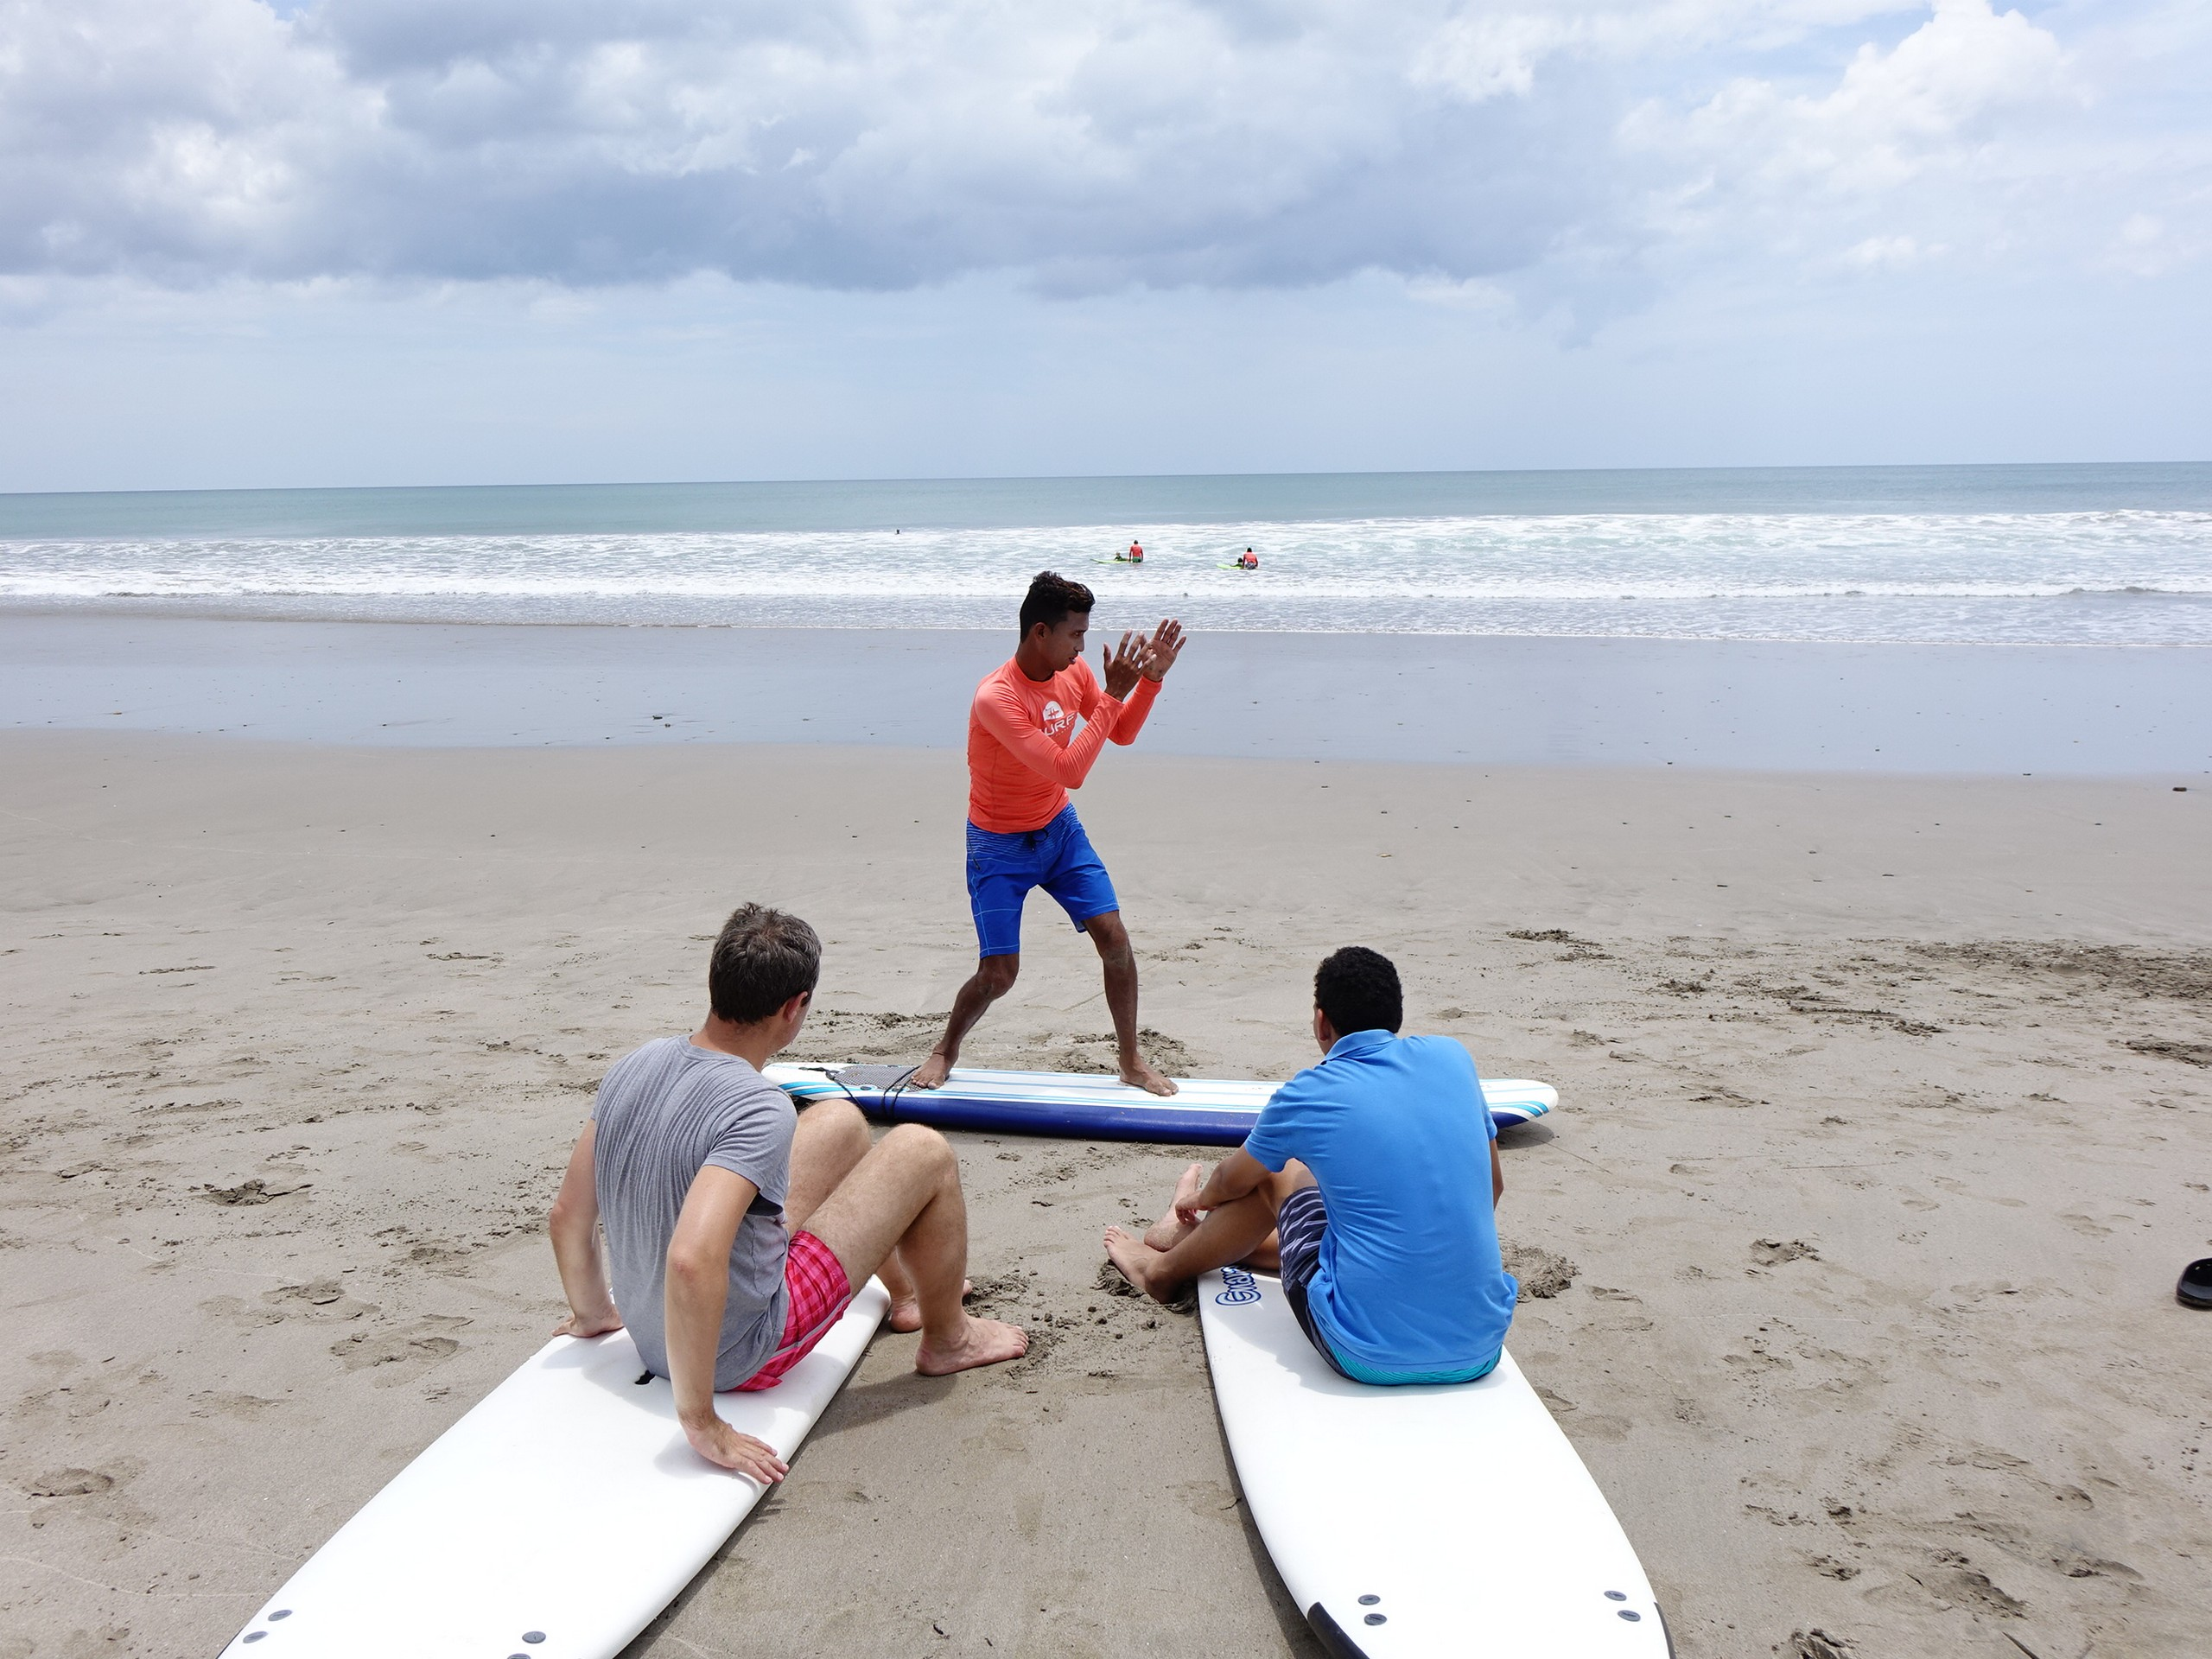 Resting before the surfing lesson in San Juan del Sur, Nicaragua